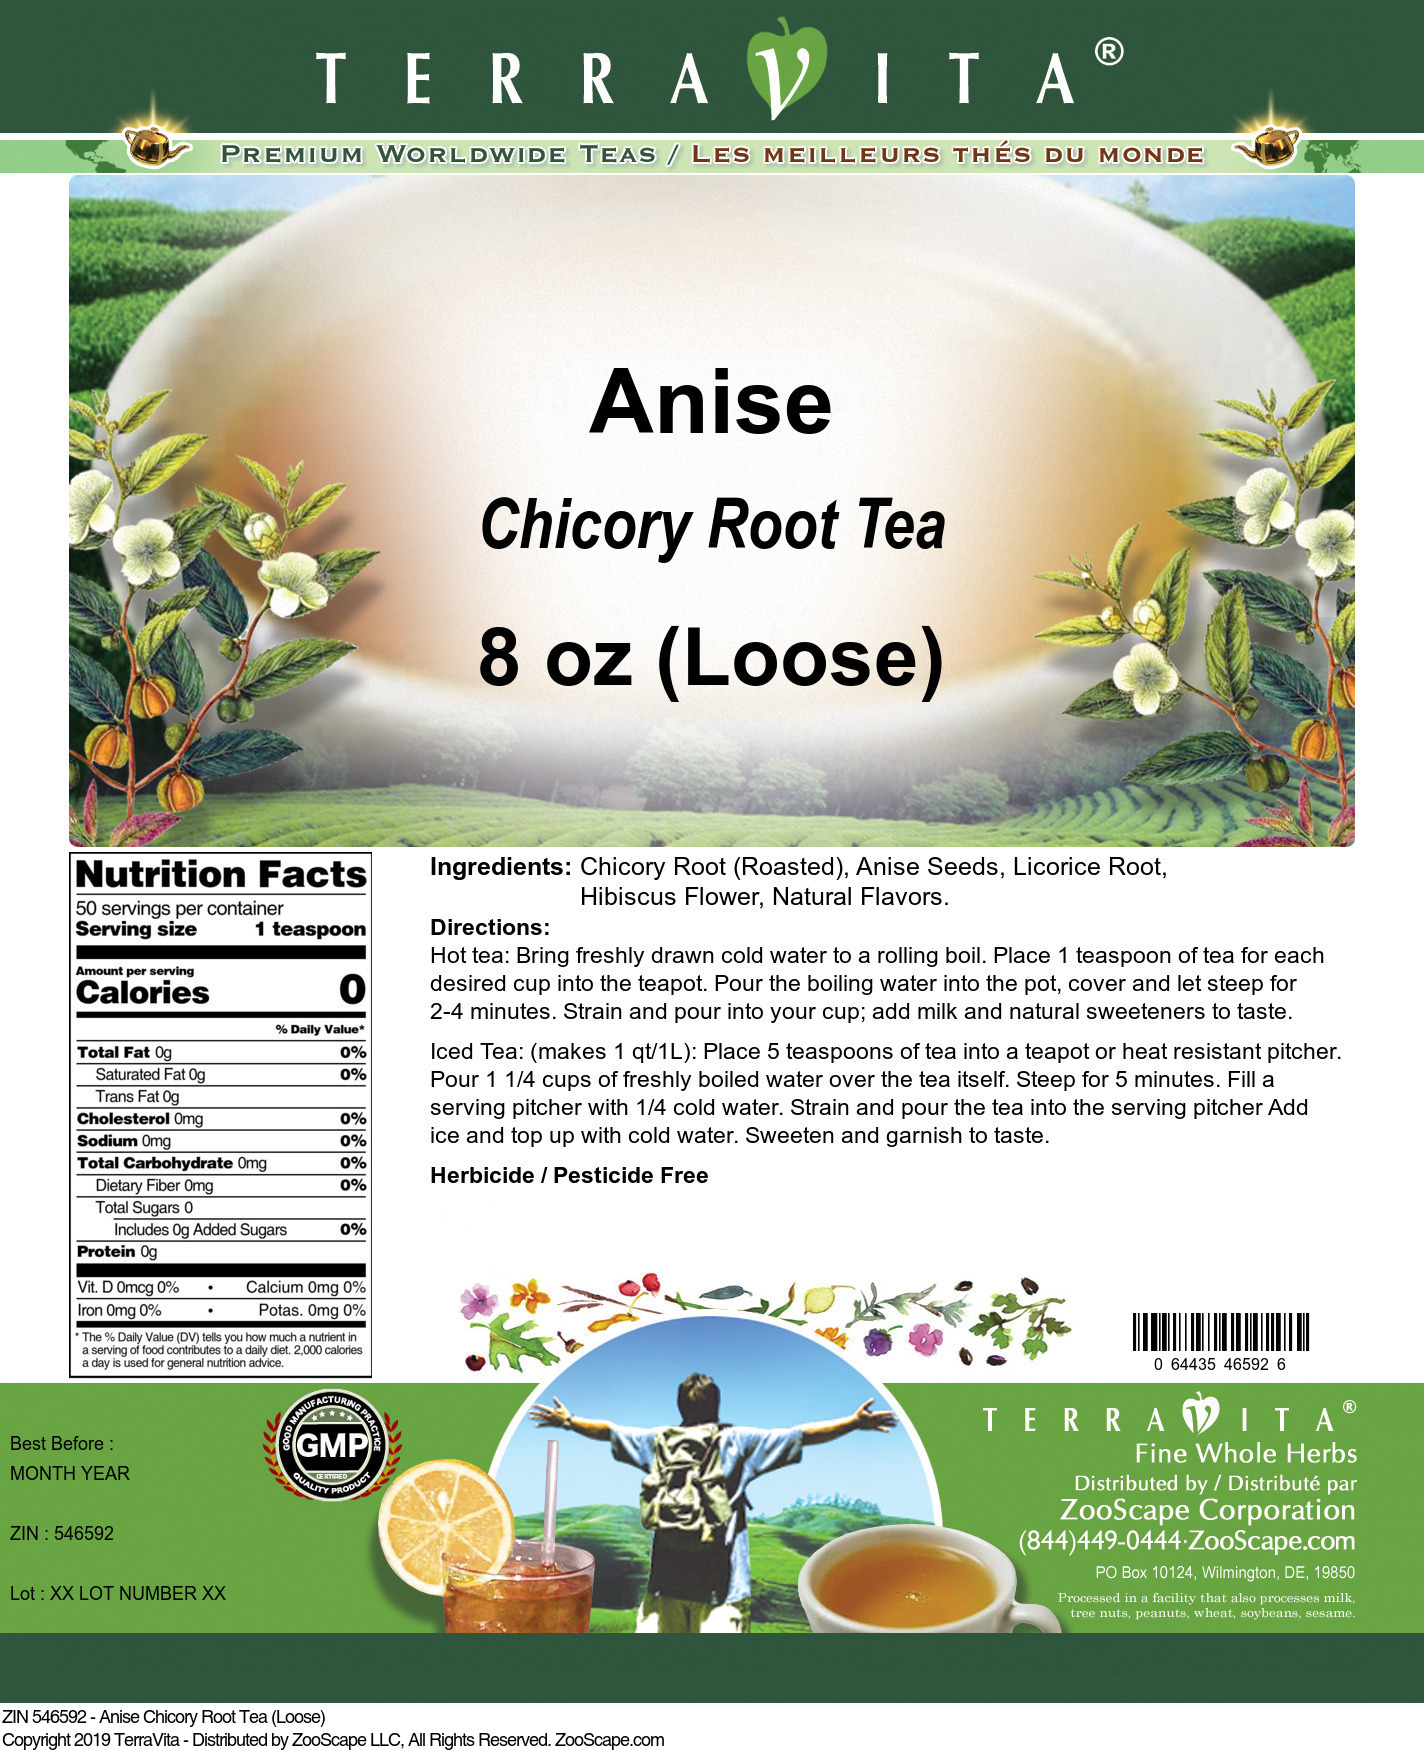 Anise Chicory Root Tea (Loose)